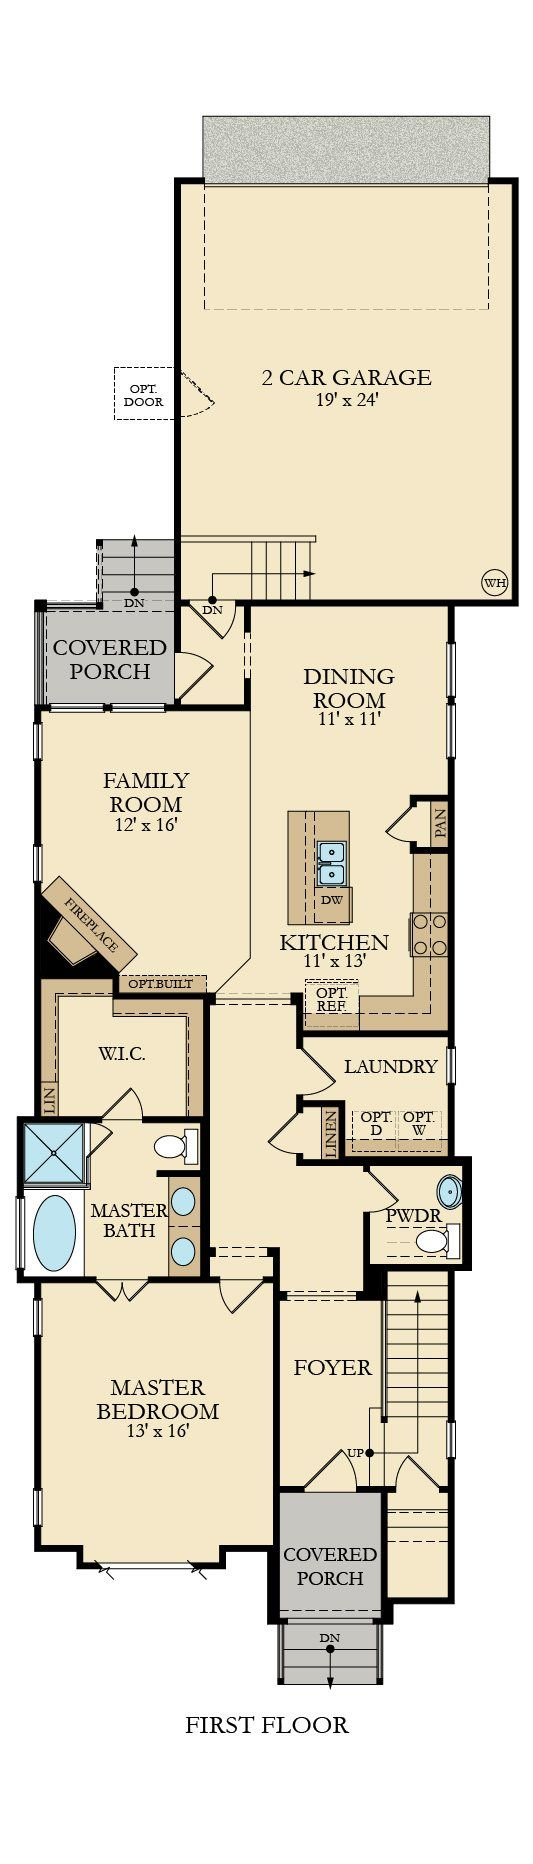 246 best floor plans images on pinterest floor plans seattle mccoury new home plan in tollgate village wainwright collection by lennar